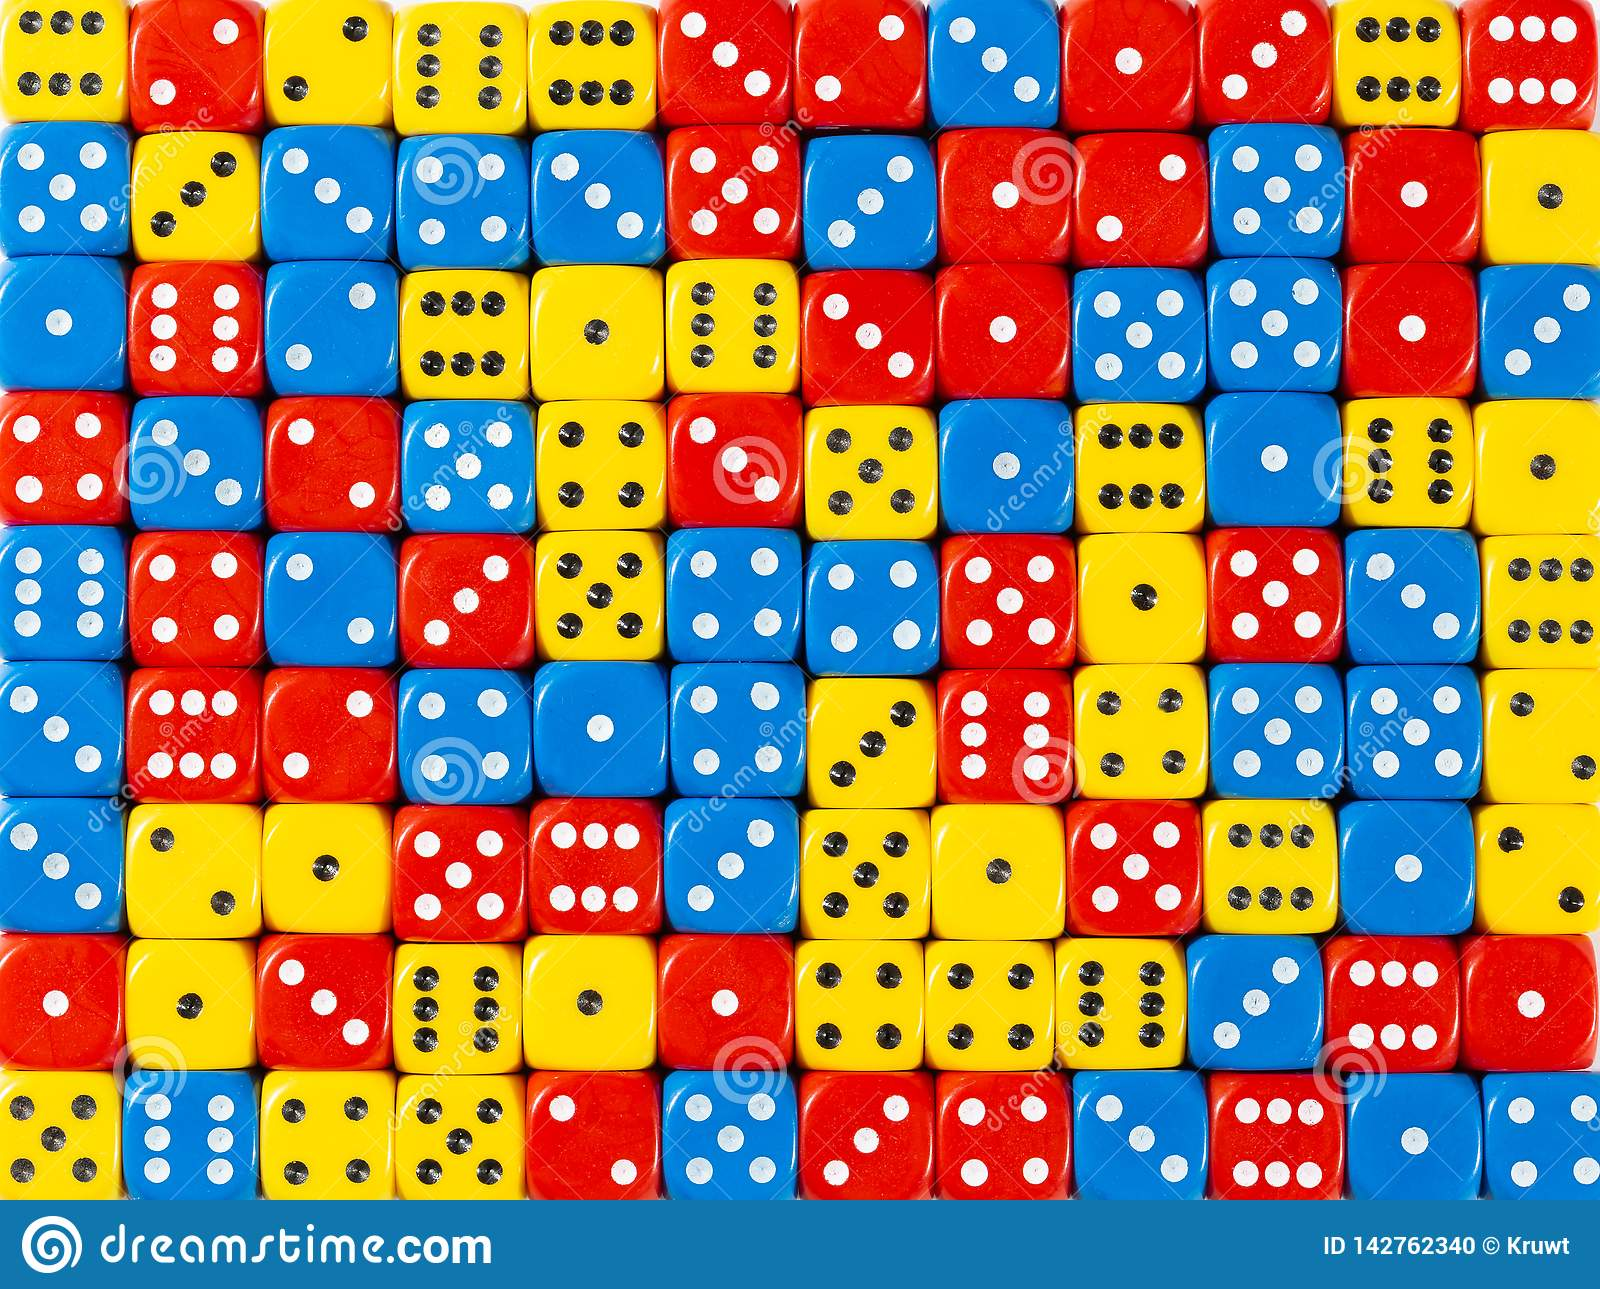 Background pattern of random ordered red, blue and yellow dices